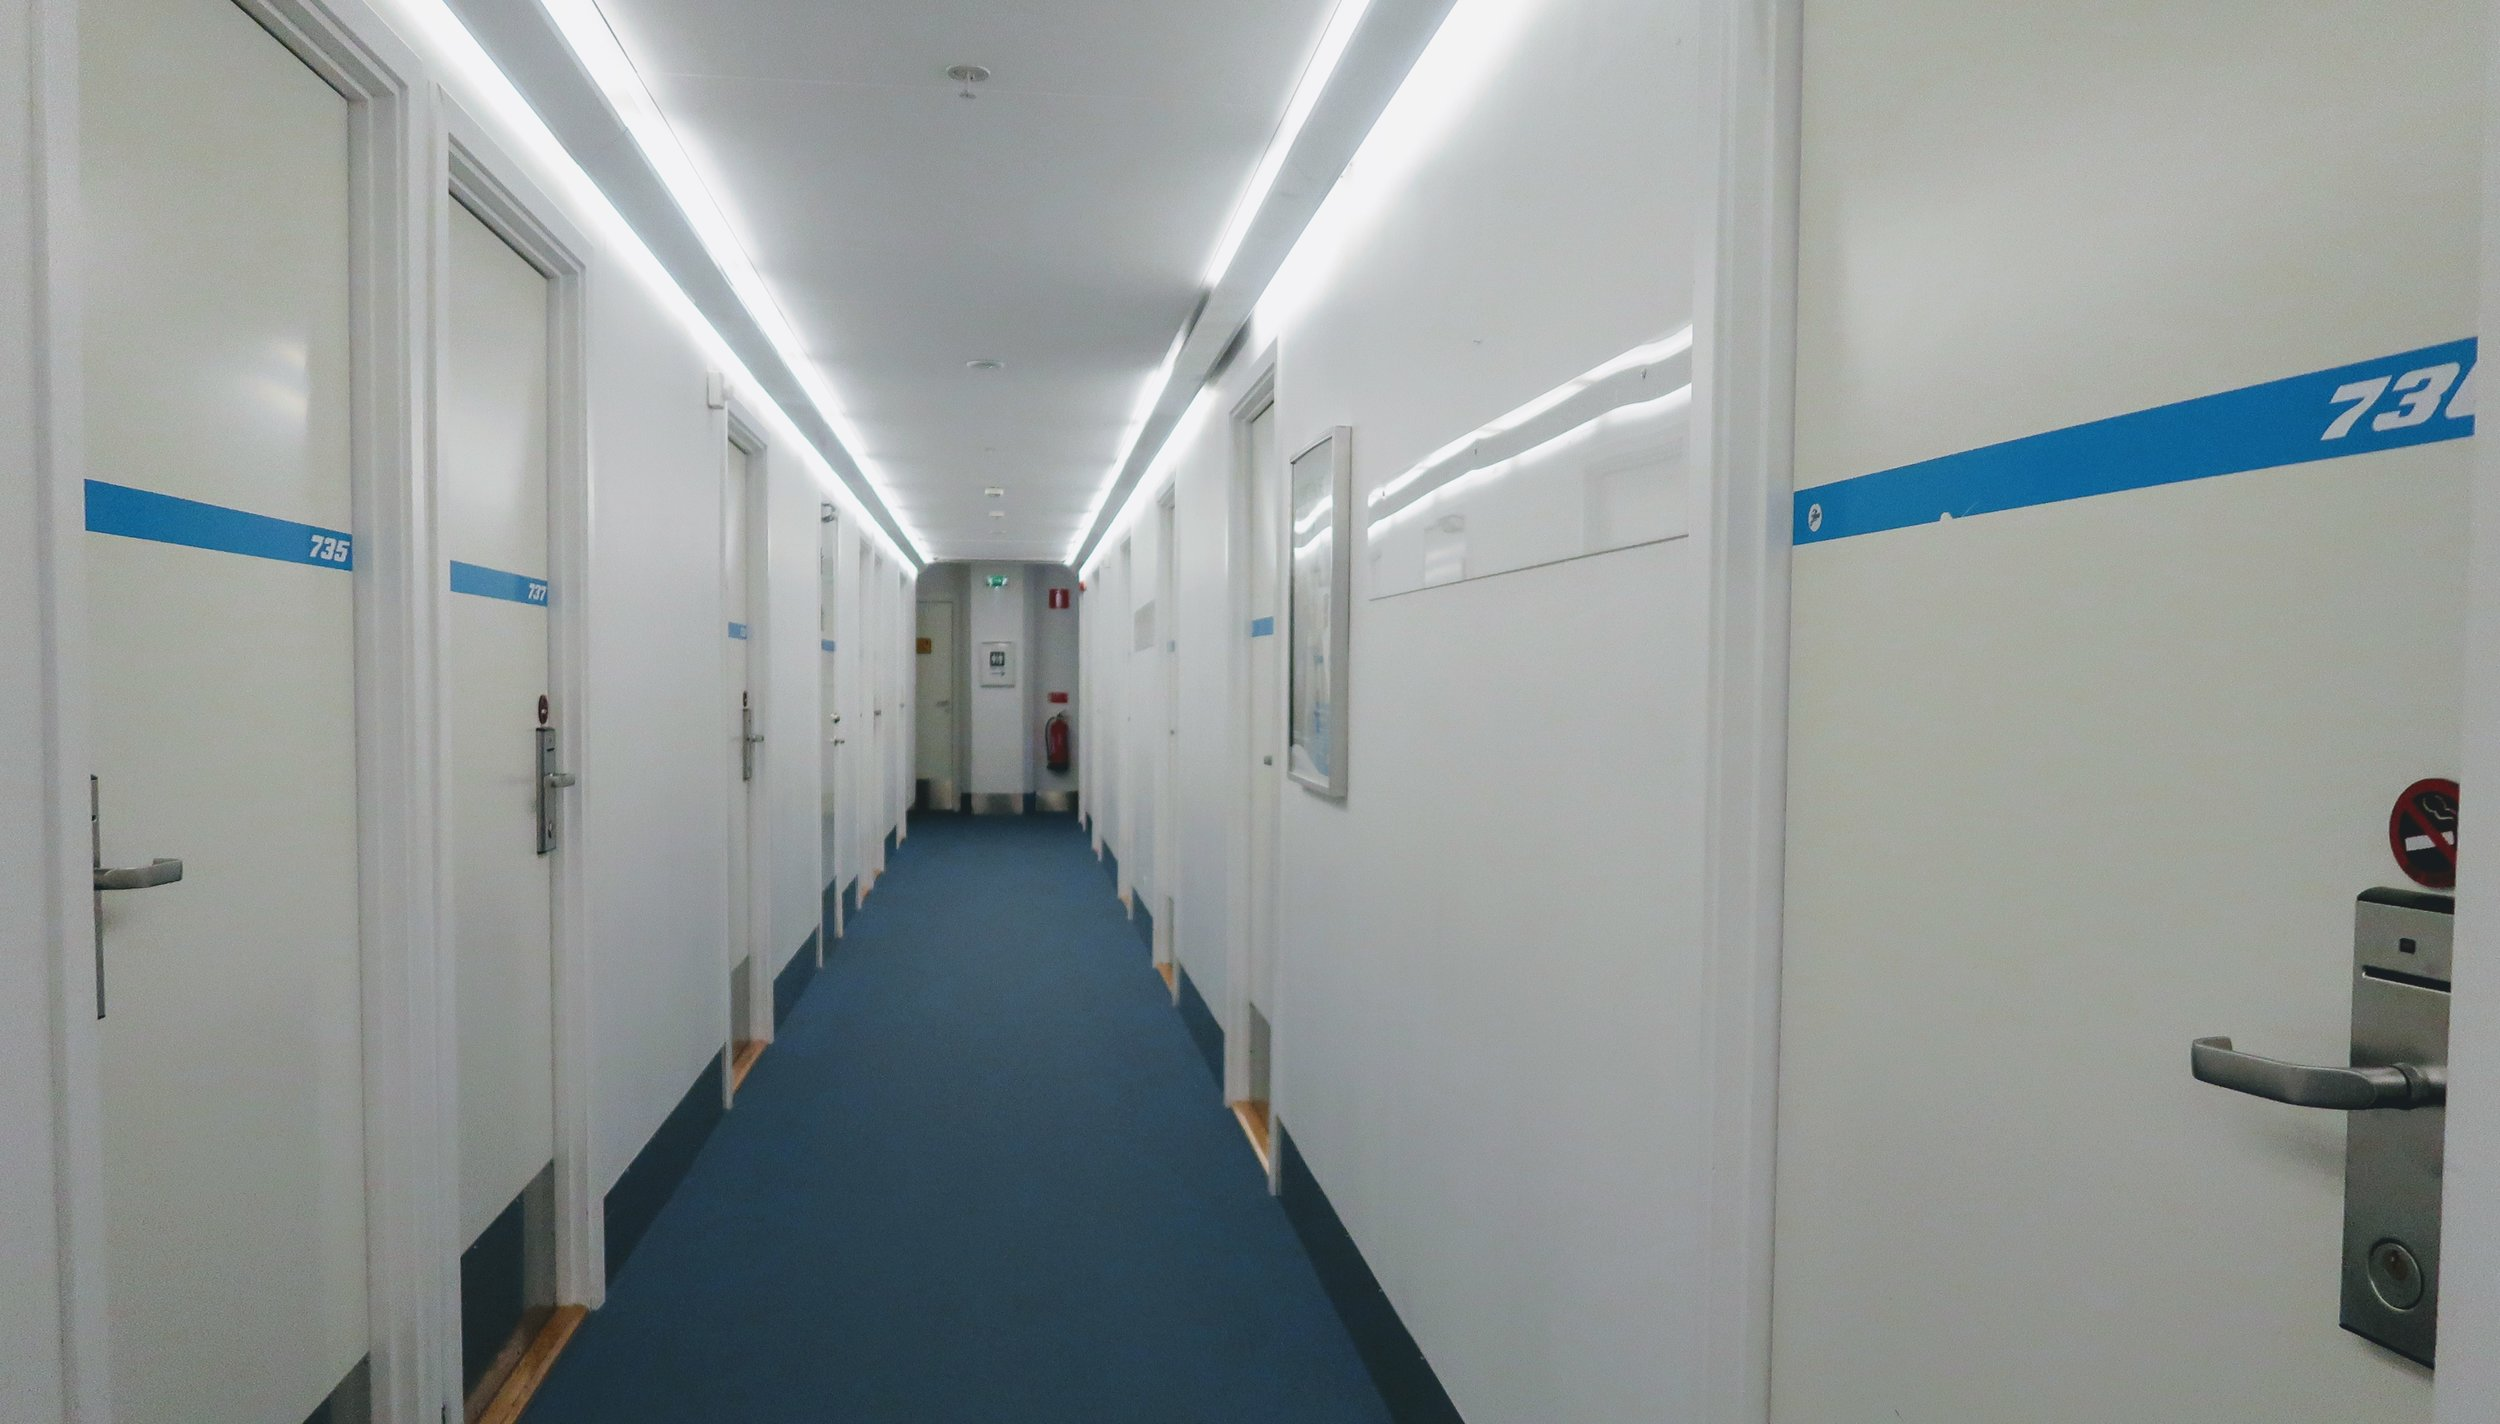 Other rooms along the corridor.